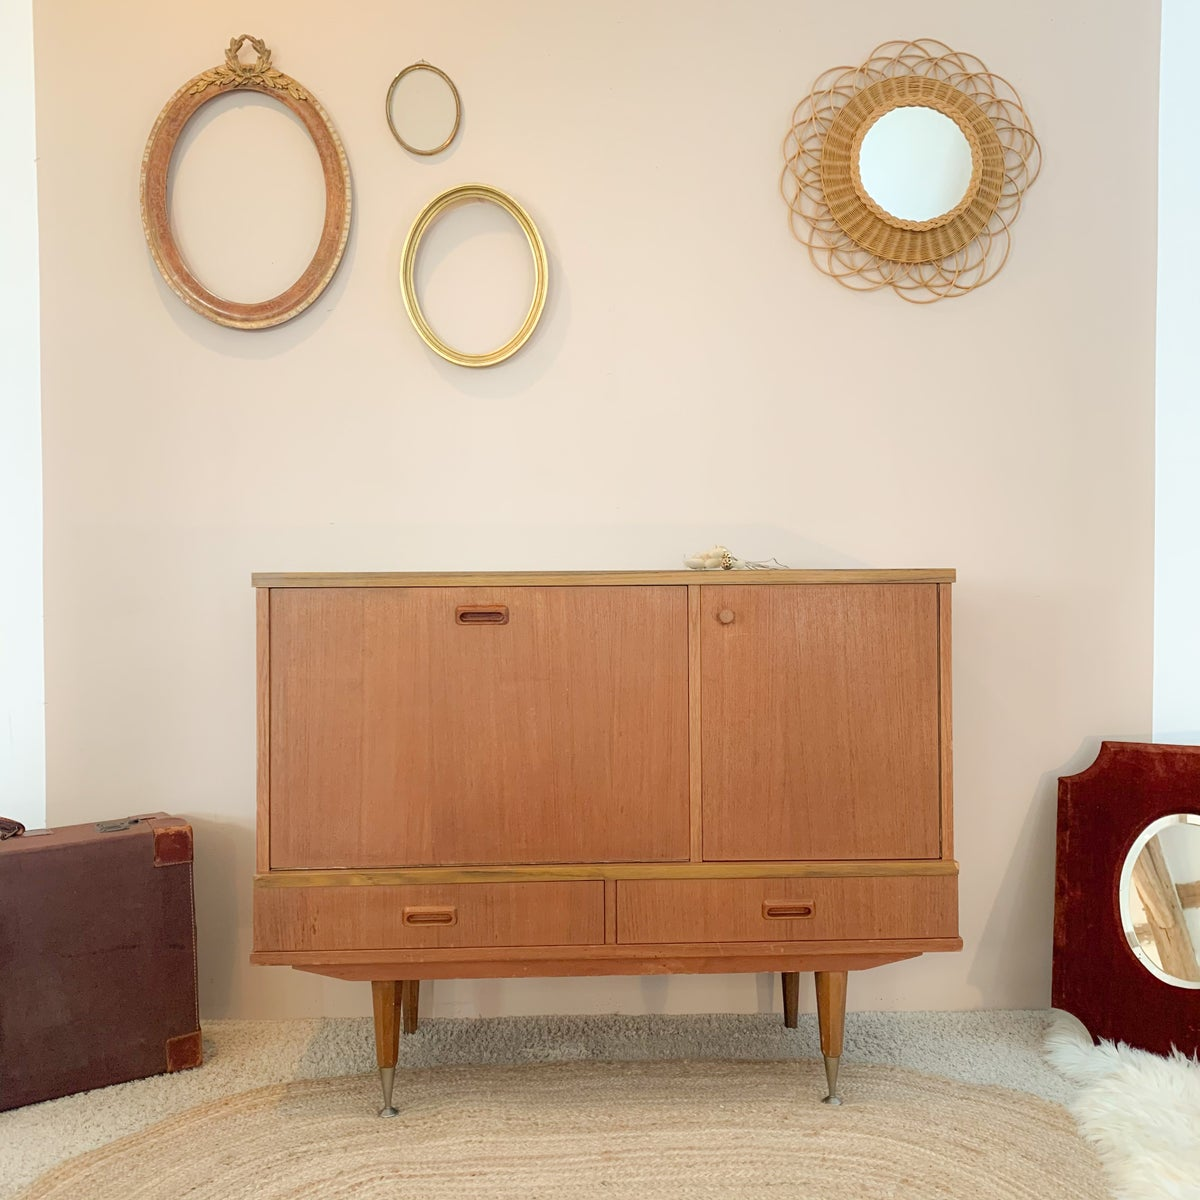 Image of VENDUE/SOLD OUT Mini Enfilade Nude